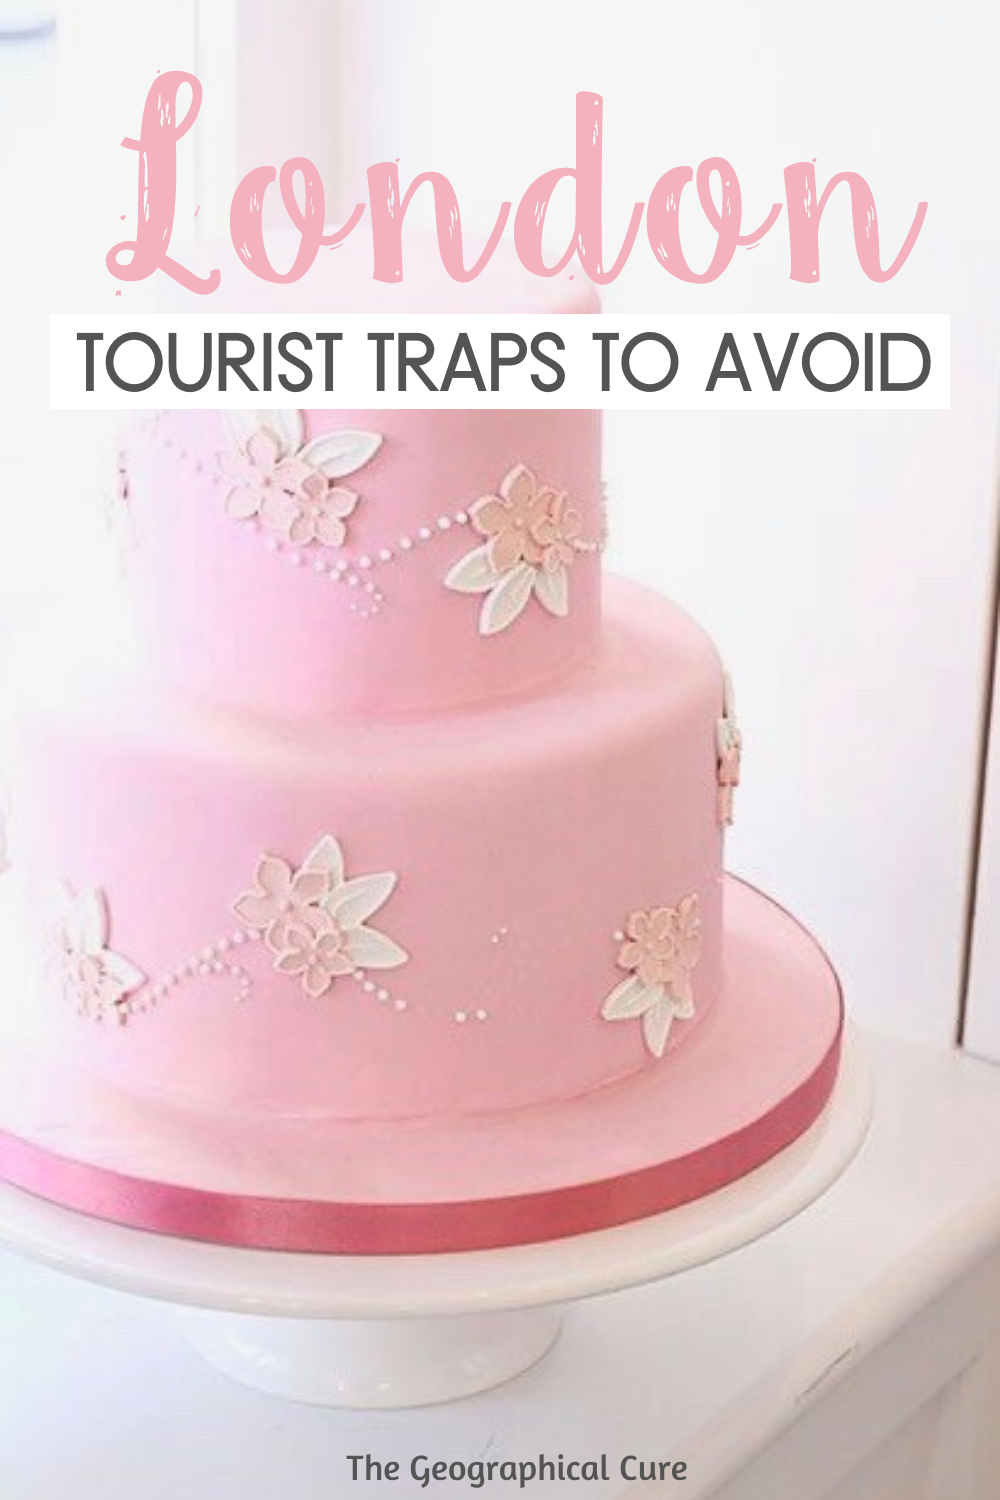 Tourist Traps and Mistakes To Avoid in London